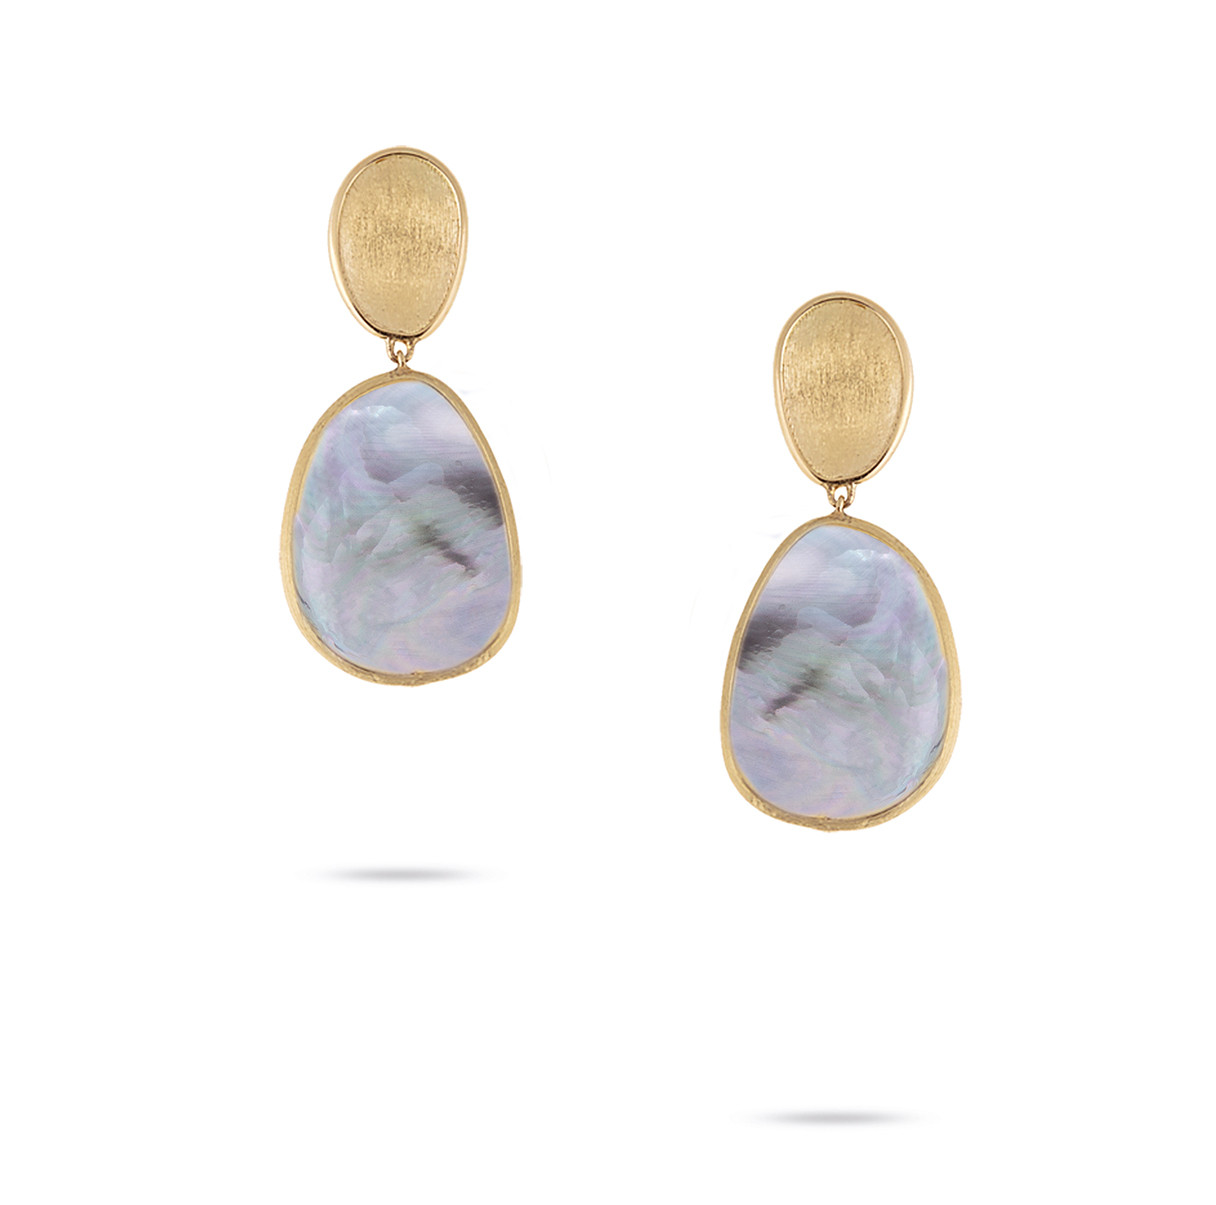 Marco Bicego Black Mother of Pearl Lunaria Earrings